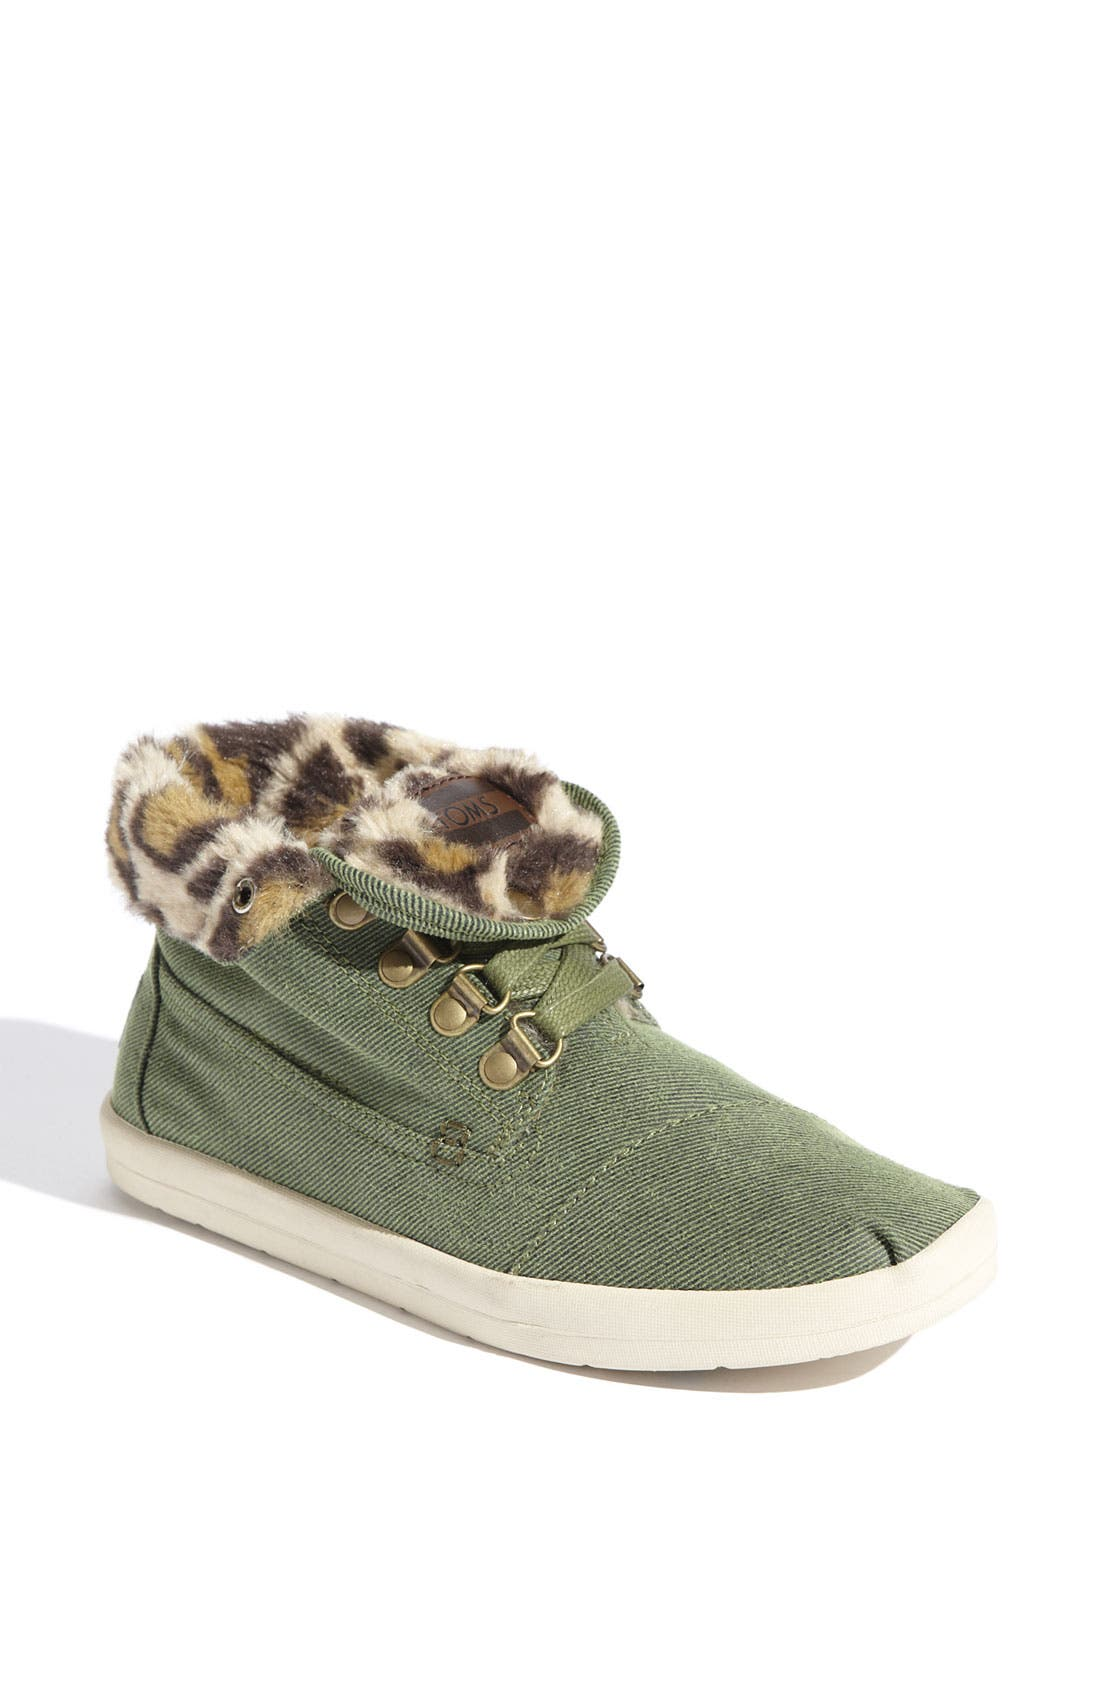 Main Image - TOMS 'Botas - Highlands' Fleece Chukka Boot (Women)